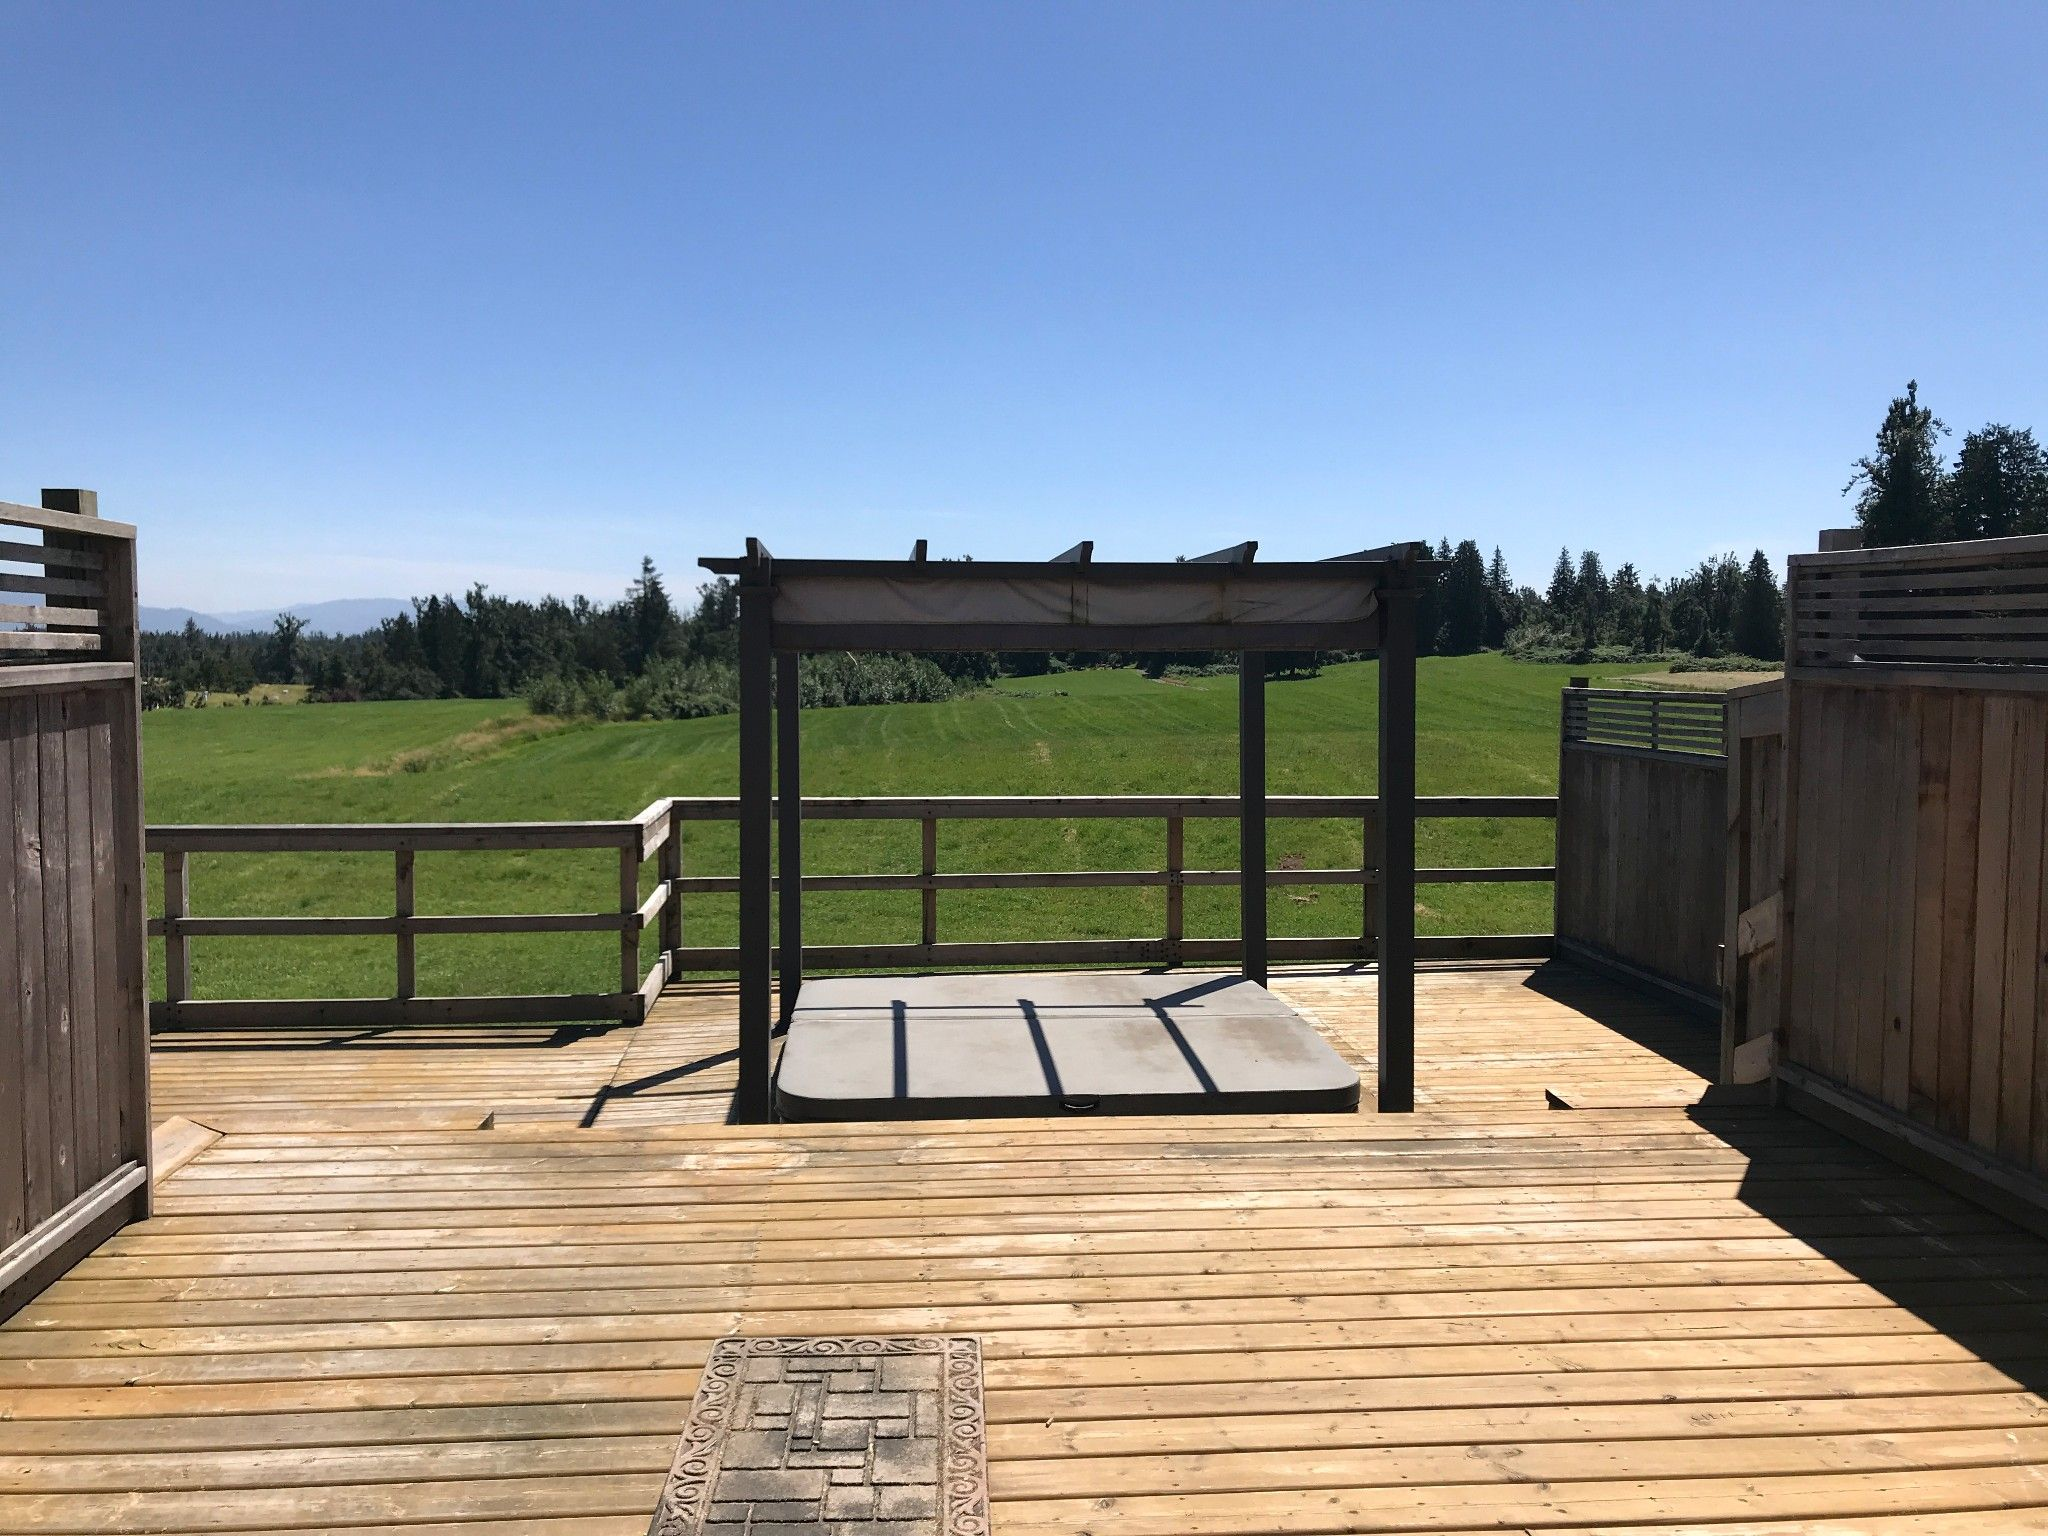 Photo 21: Photos: 29846 Townshipline Rd. in Abbotsford: House for rent